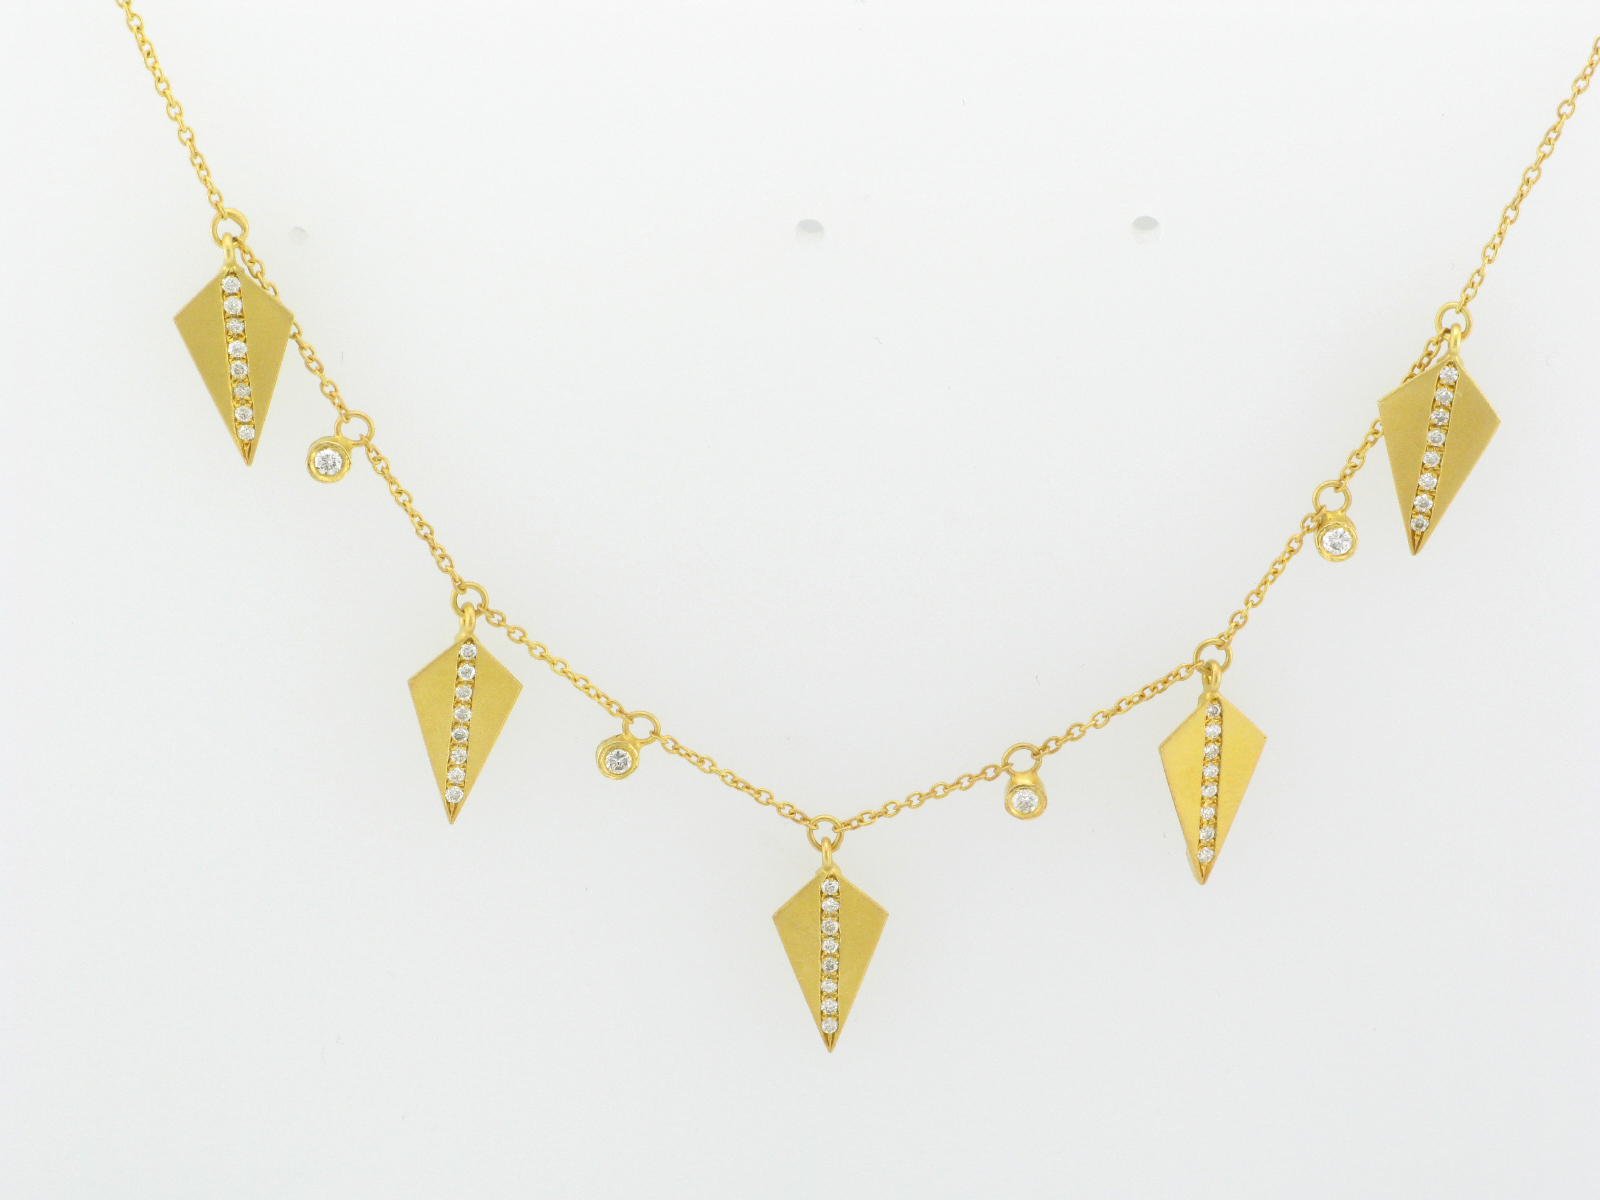 Gold Spears Necklace